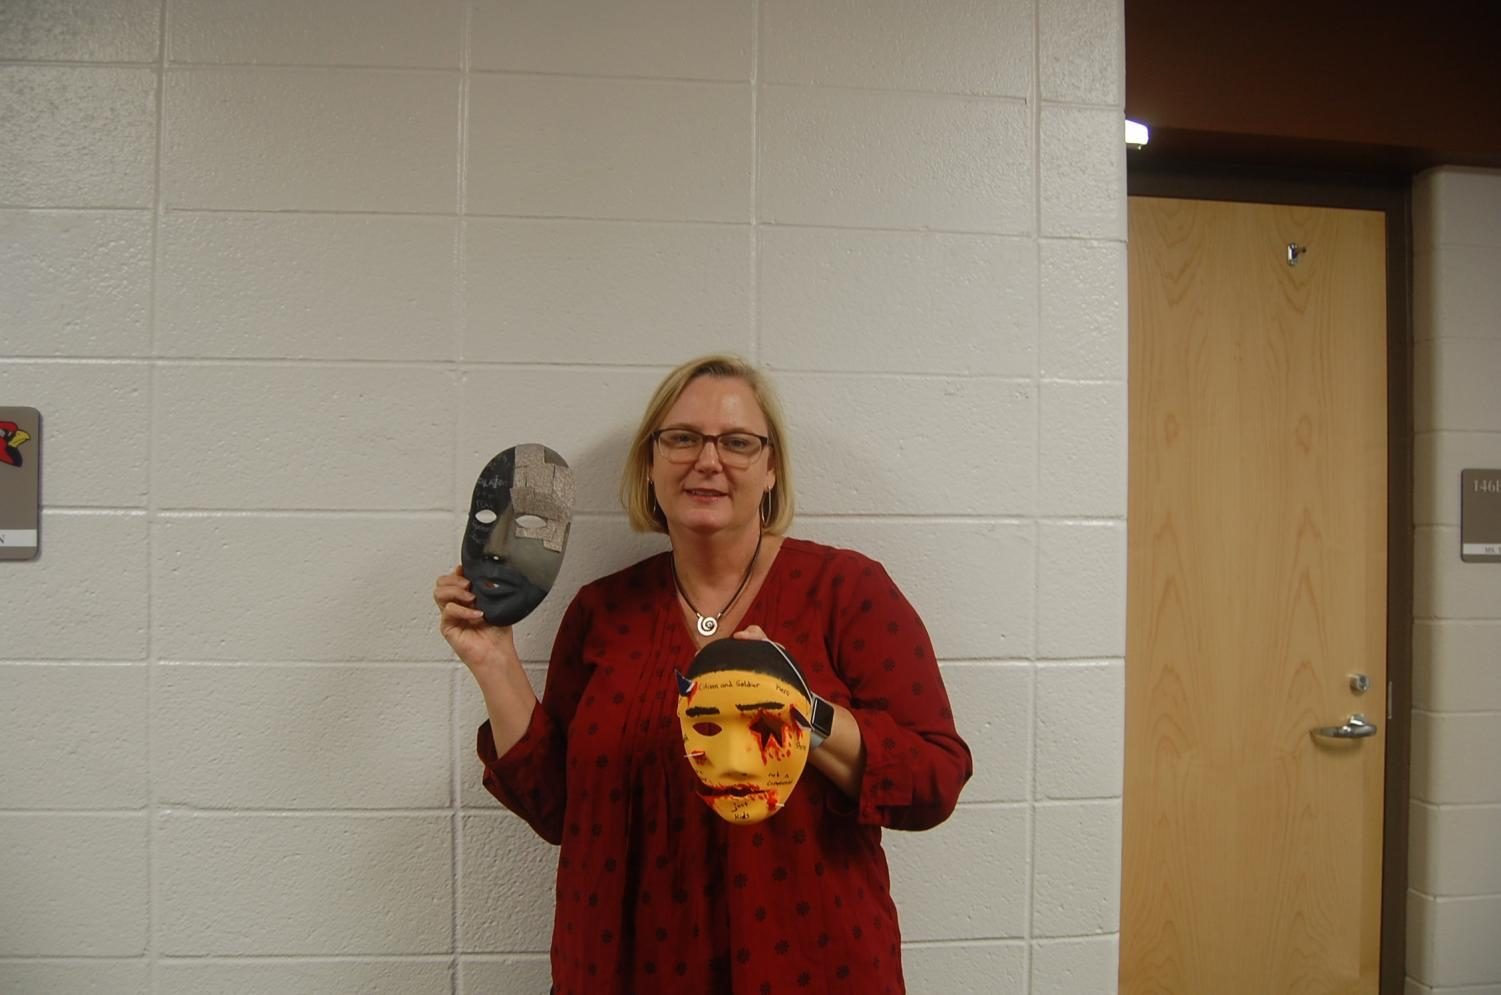 English teacher Julie Breeden assigned the pictured masks as a student project, which will be the subject of her presentation at the National Council of Teachers of English.